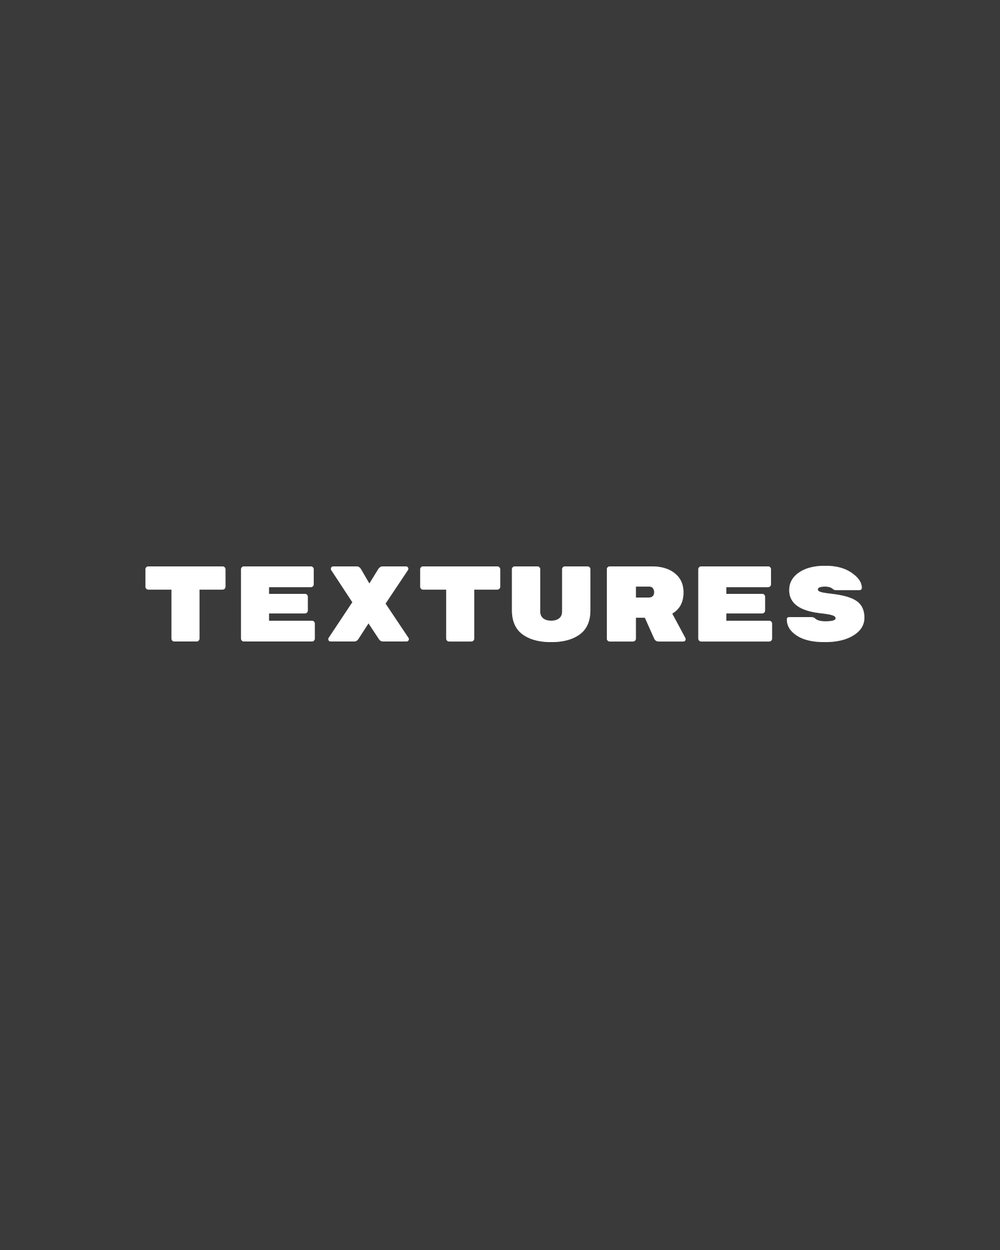 Chapter 3: Textures